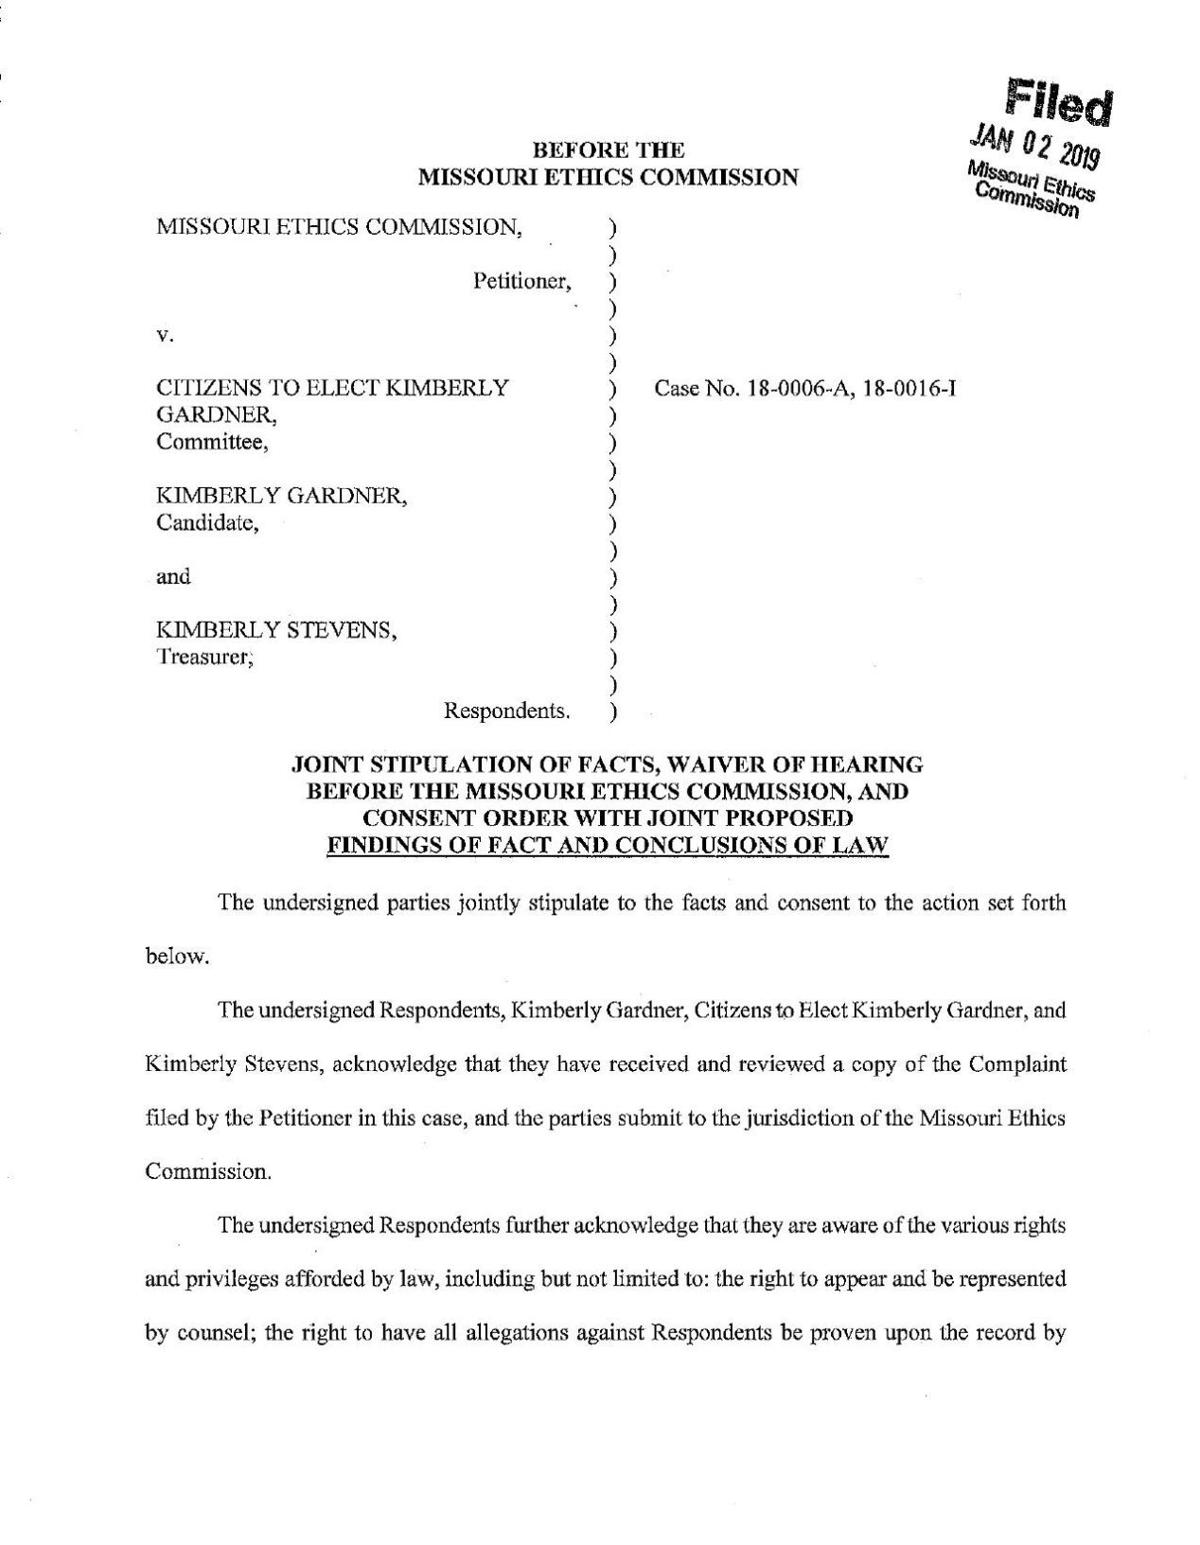 Consent order between Kim Gardner and Missouri Ethics Commission